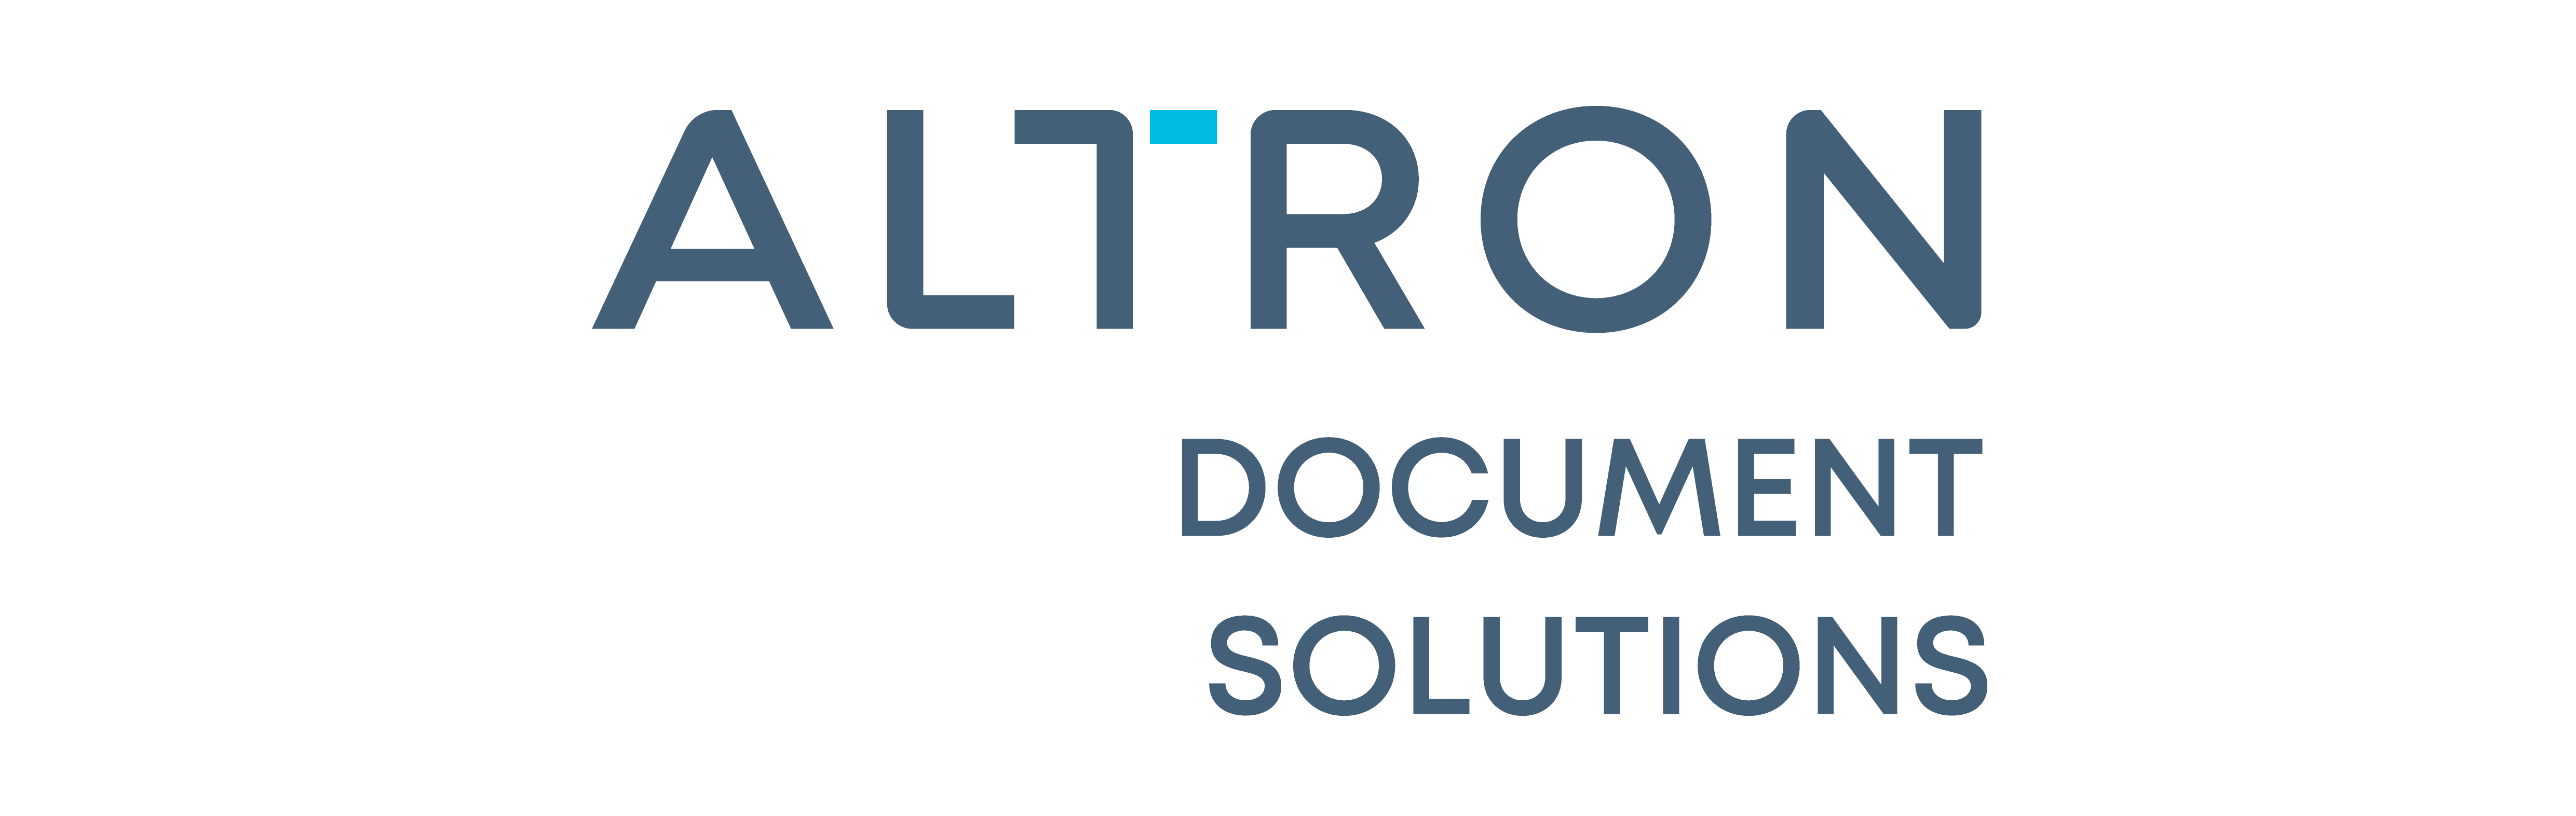 Altron Document Solutions